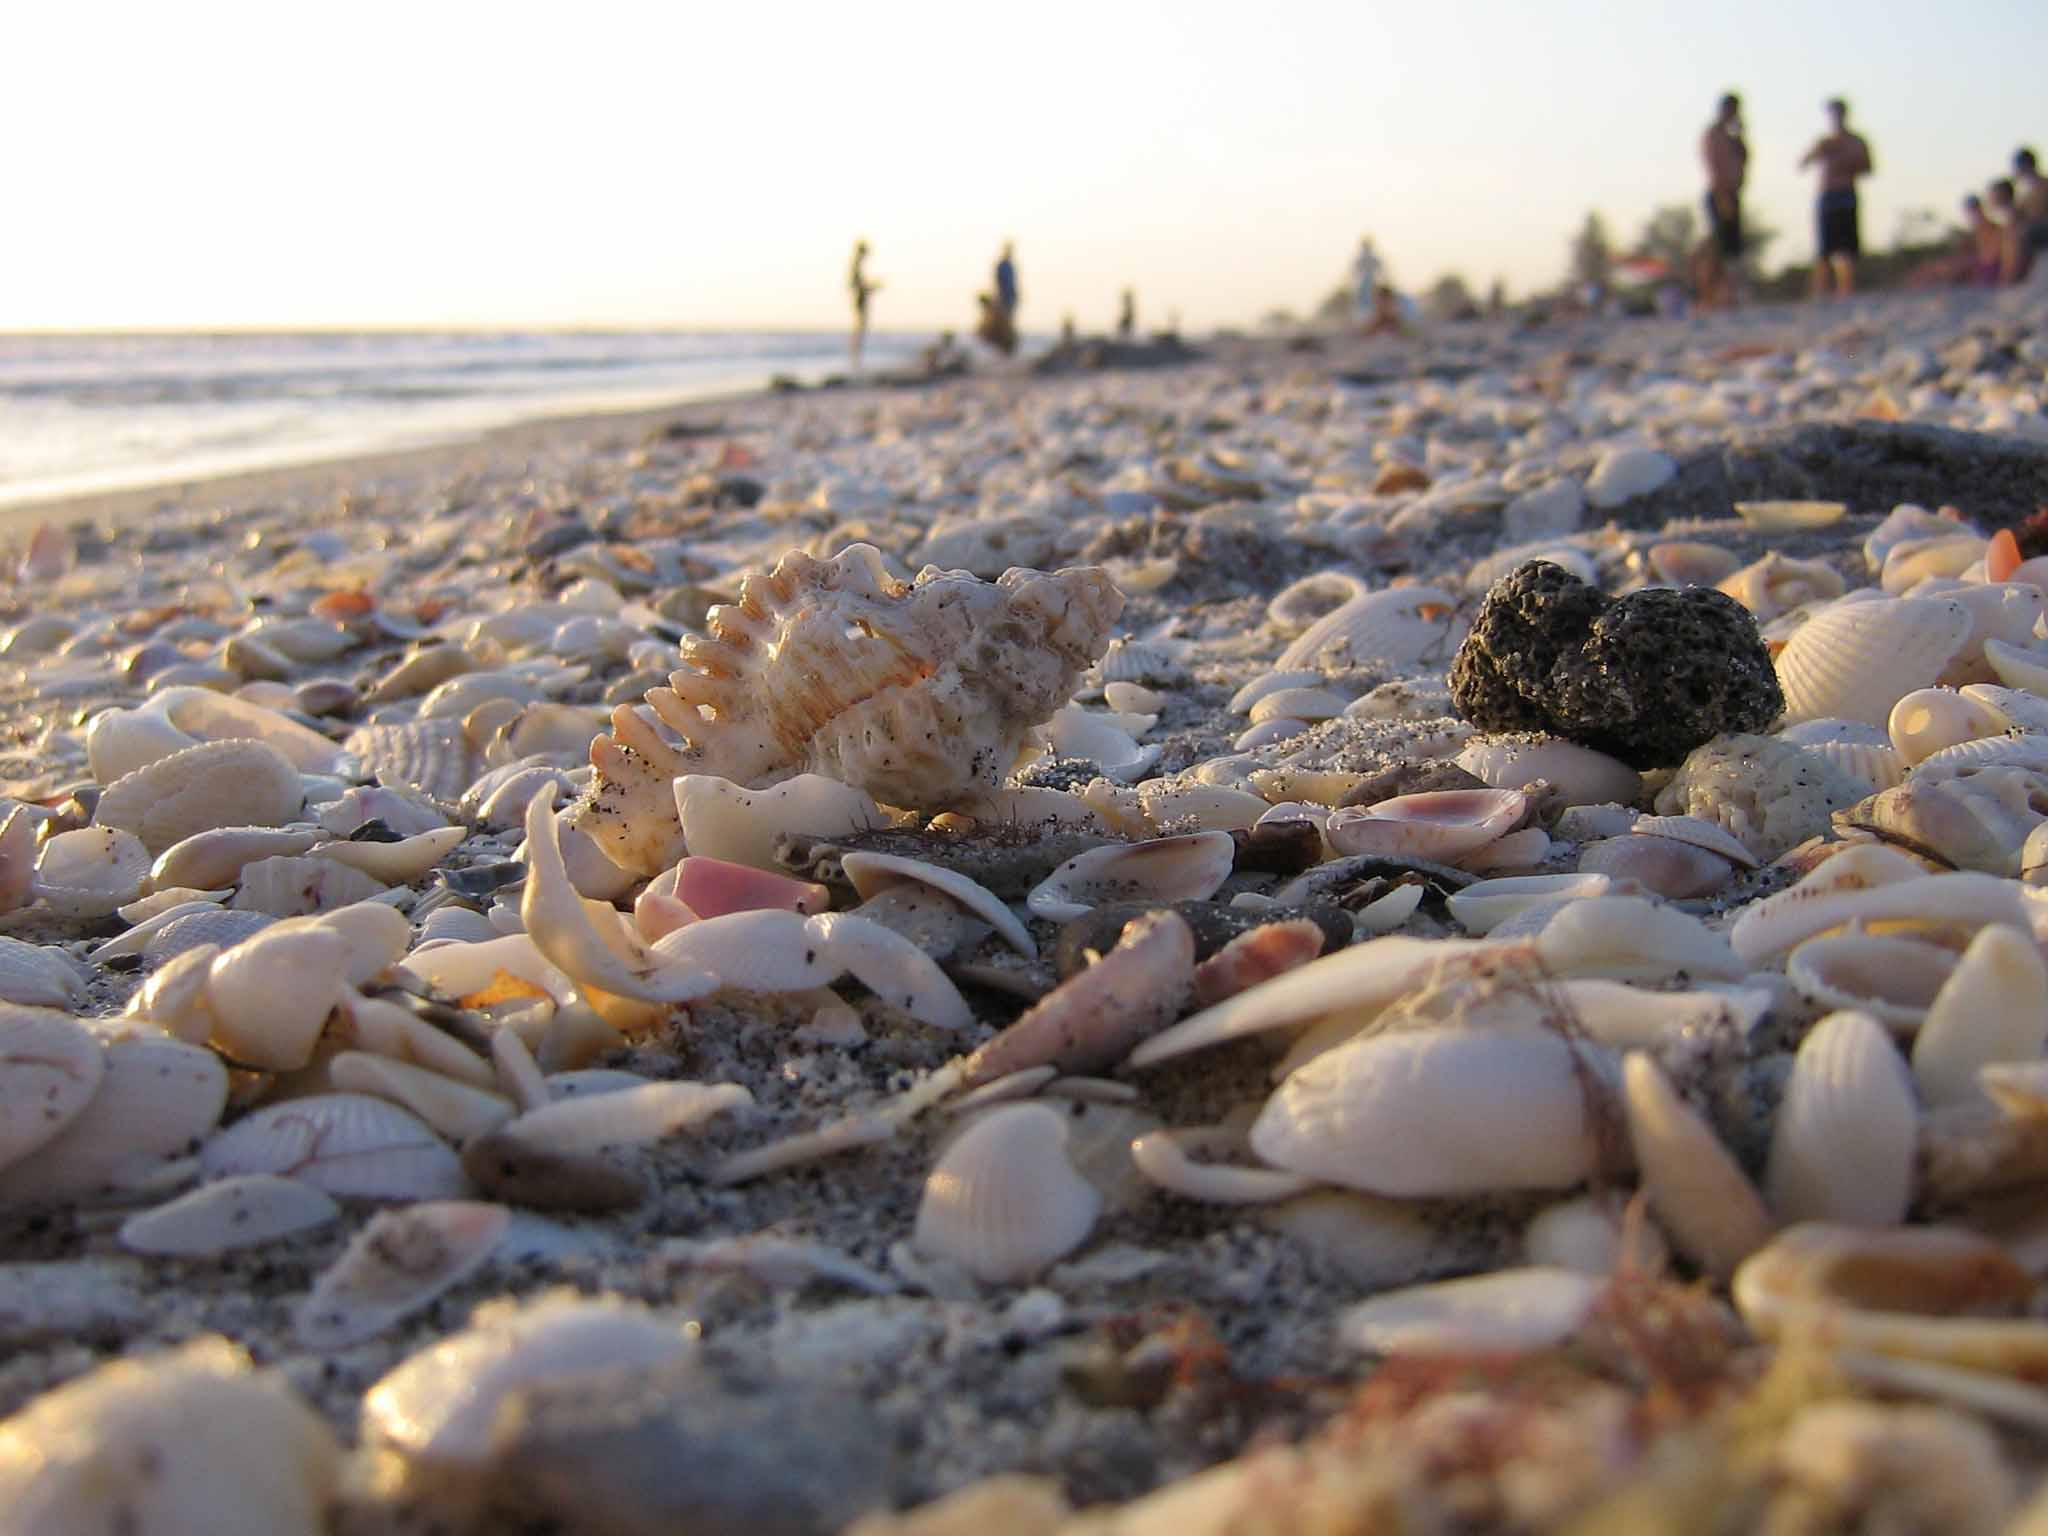 Where the shell meets the sand photo